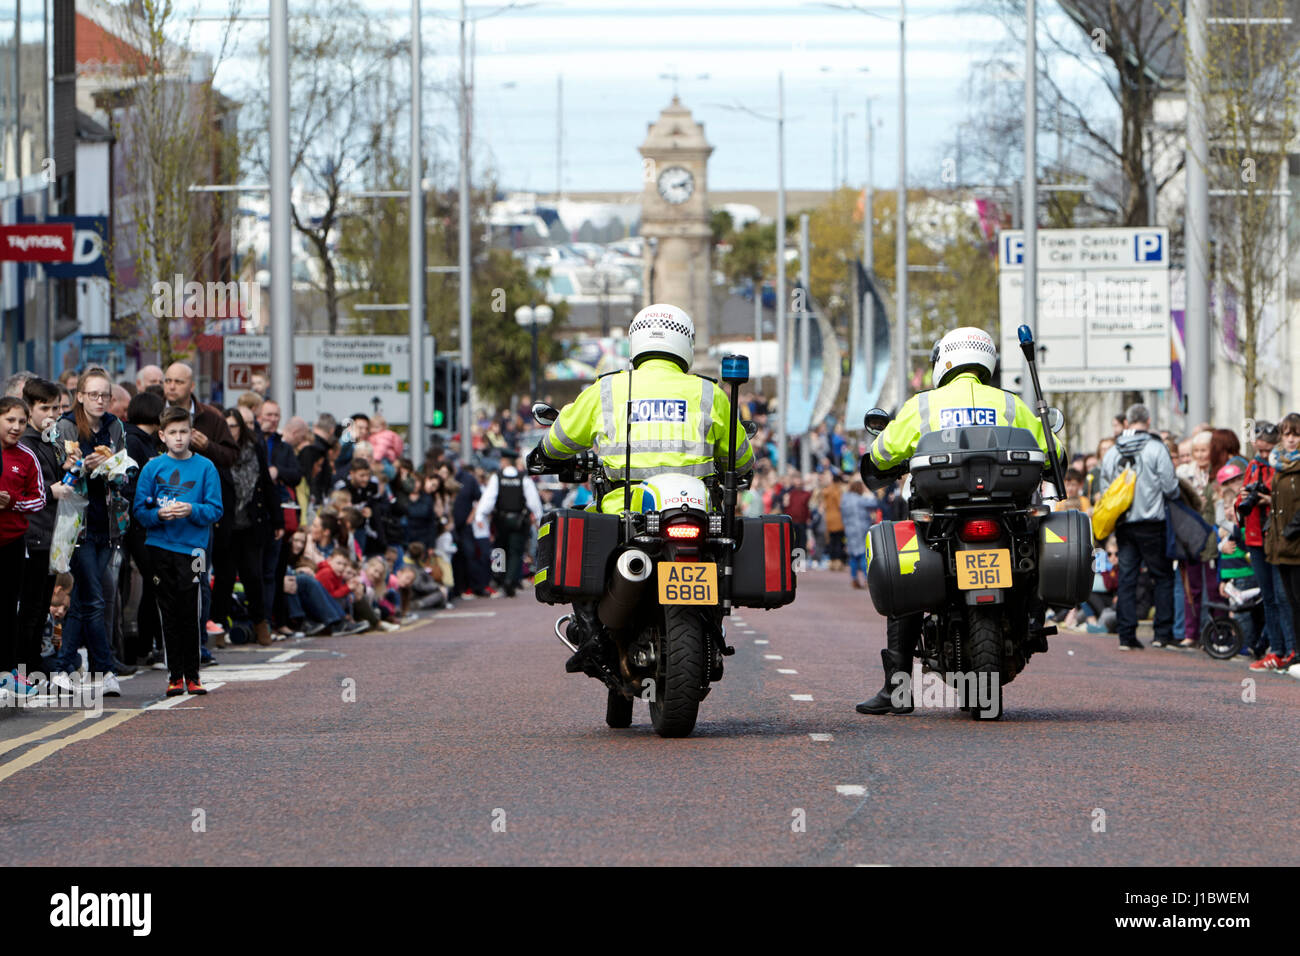 psni police officer traffic police on bmw motorbike during a tourist event parade in bangor northern ireland - Stock Image